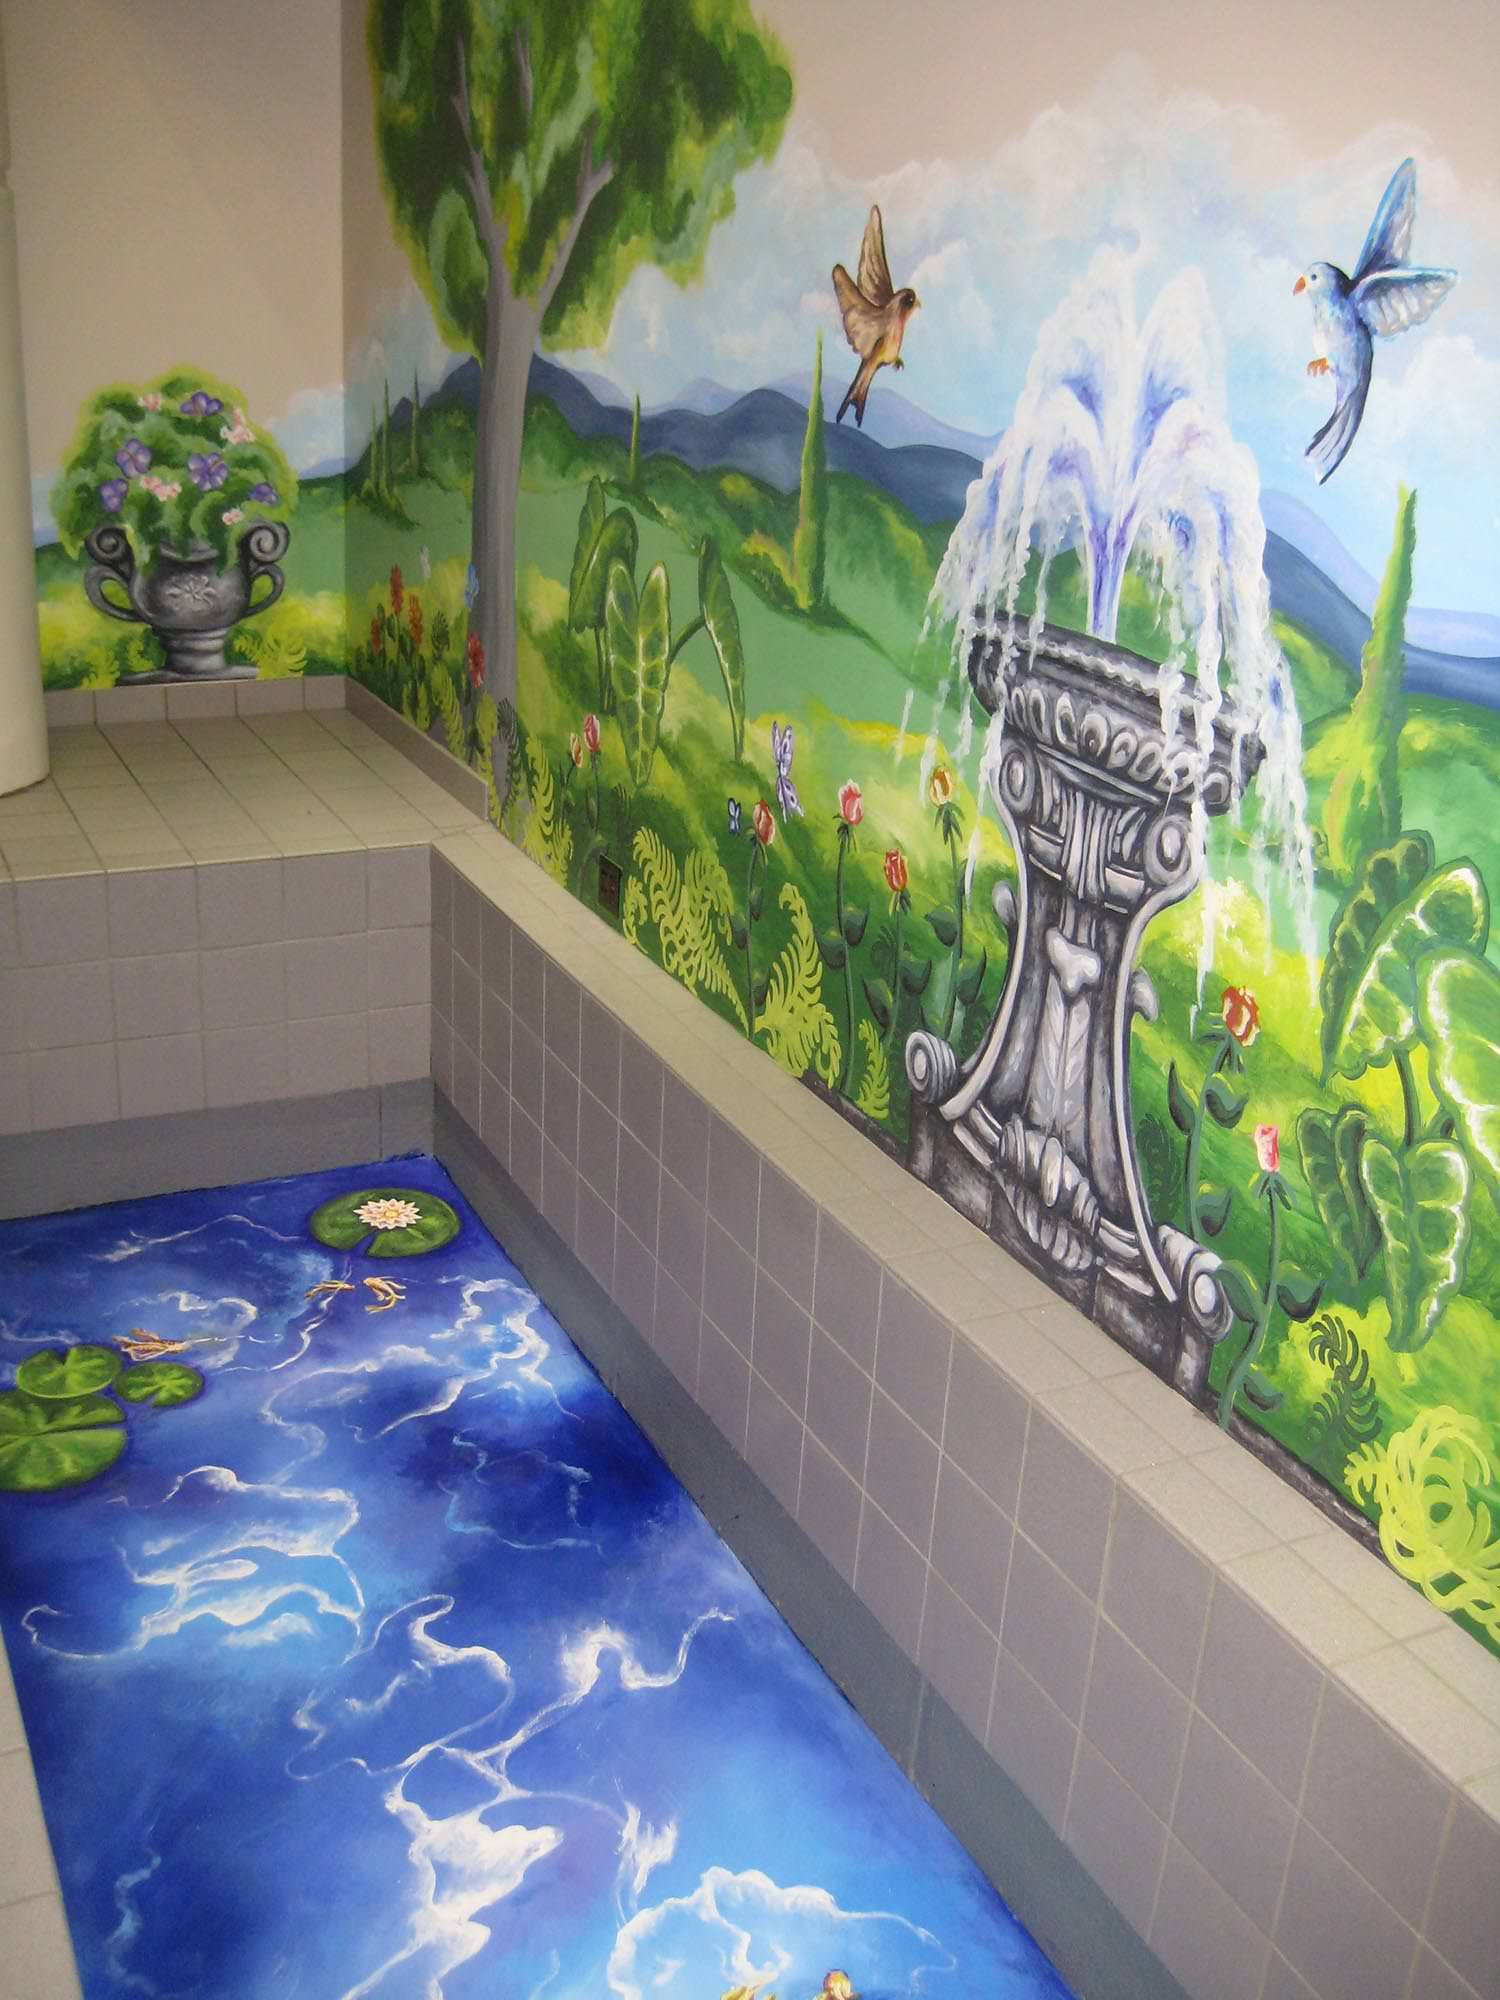 Julie Dickerson, Mural at Elliot Hospital, Manchester, NH, 2010